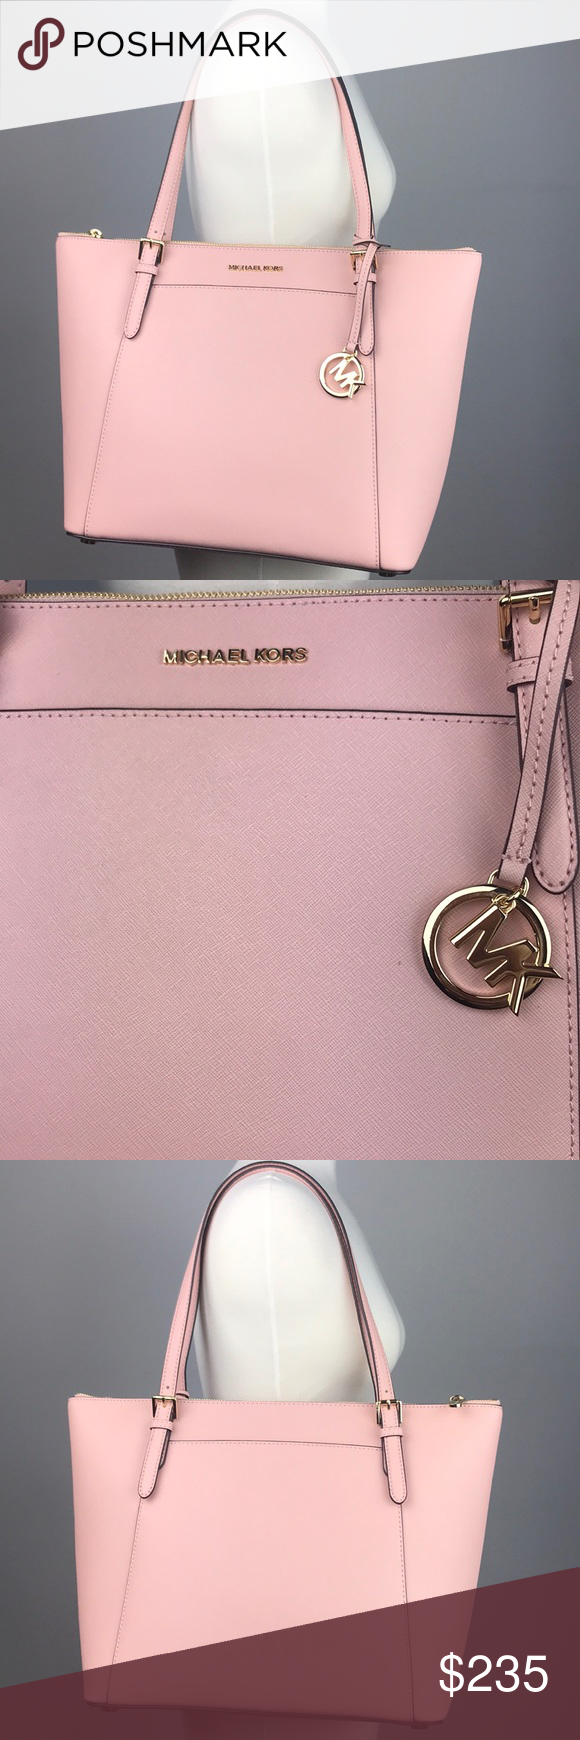 f0ae258675d1 Michael Kors Ciara bag   Jet Set Travel Wallet Set Stunning muted pink  colored tote or shoulder bag and matching wallet. PURSE  Interior zipper  Multiple ...